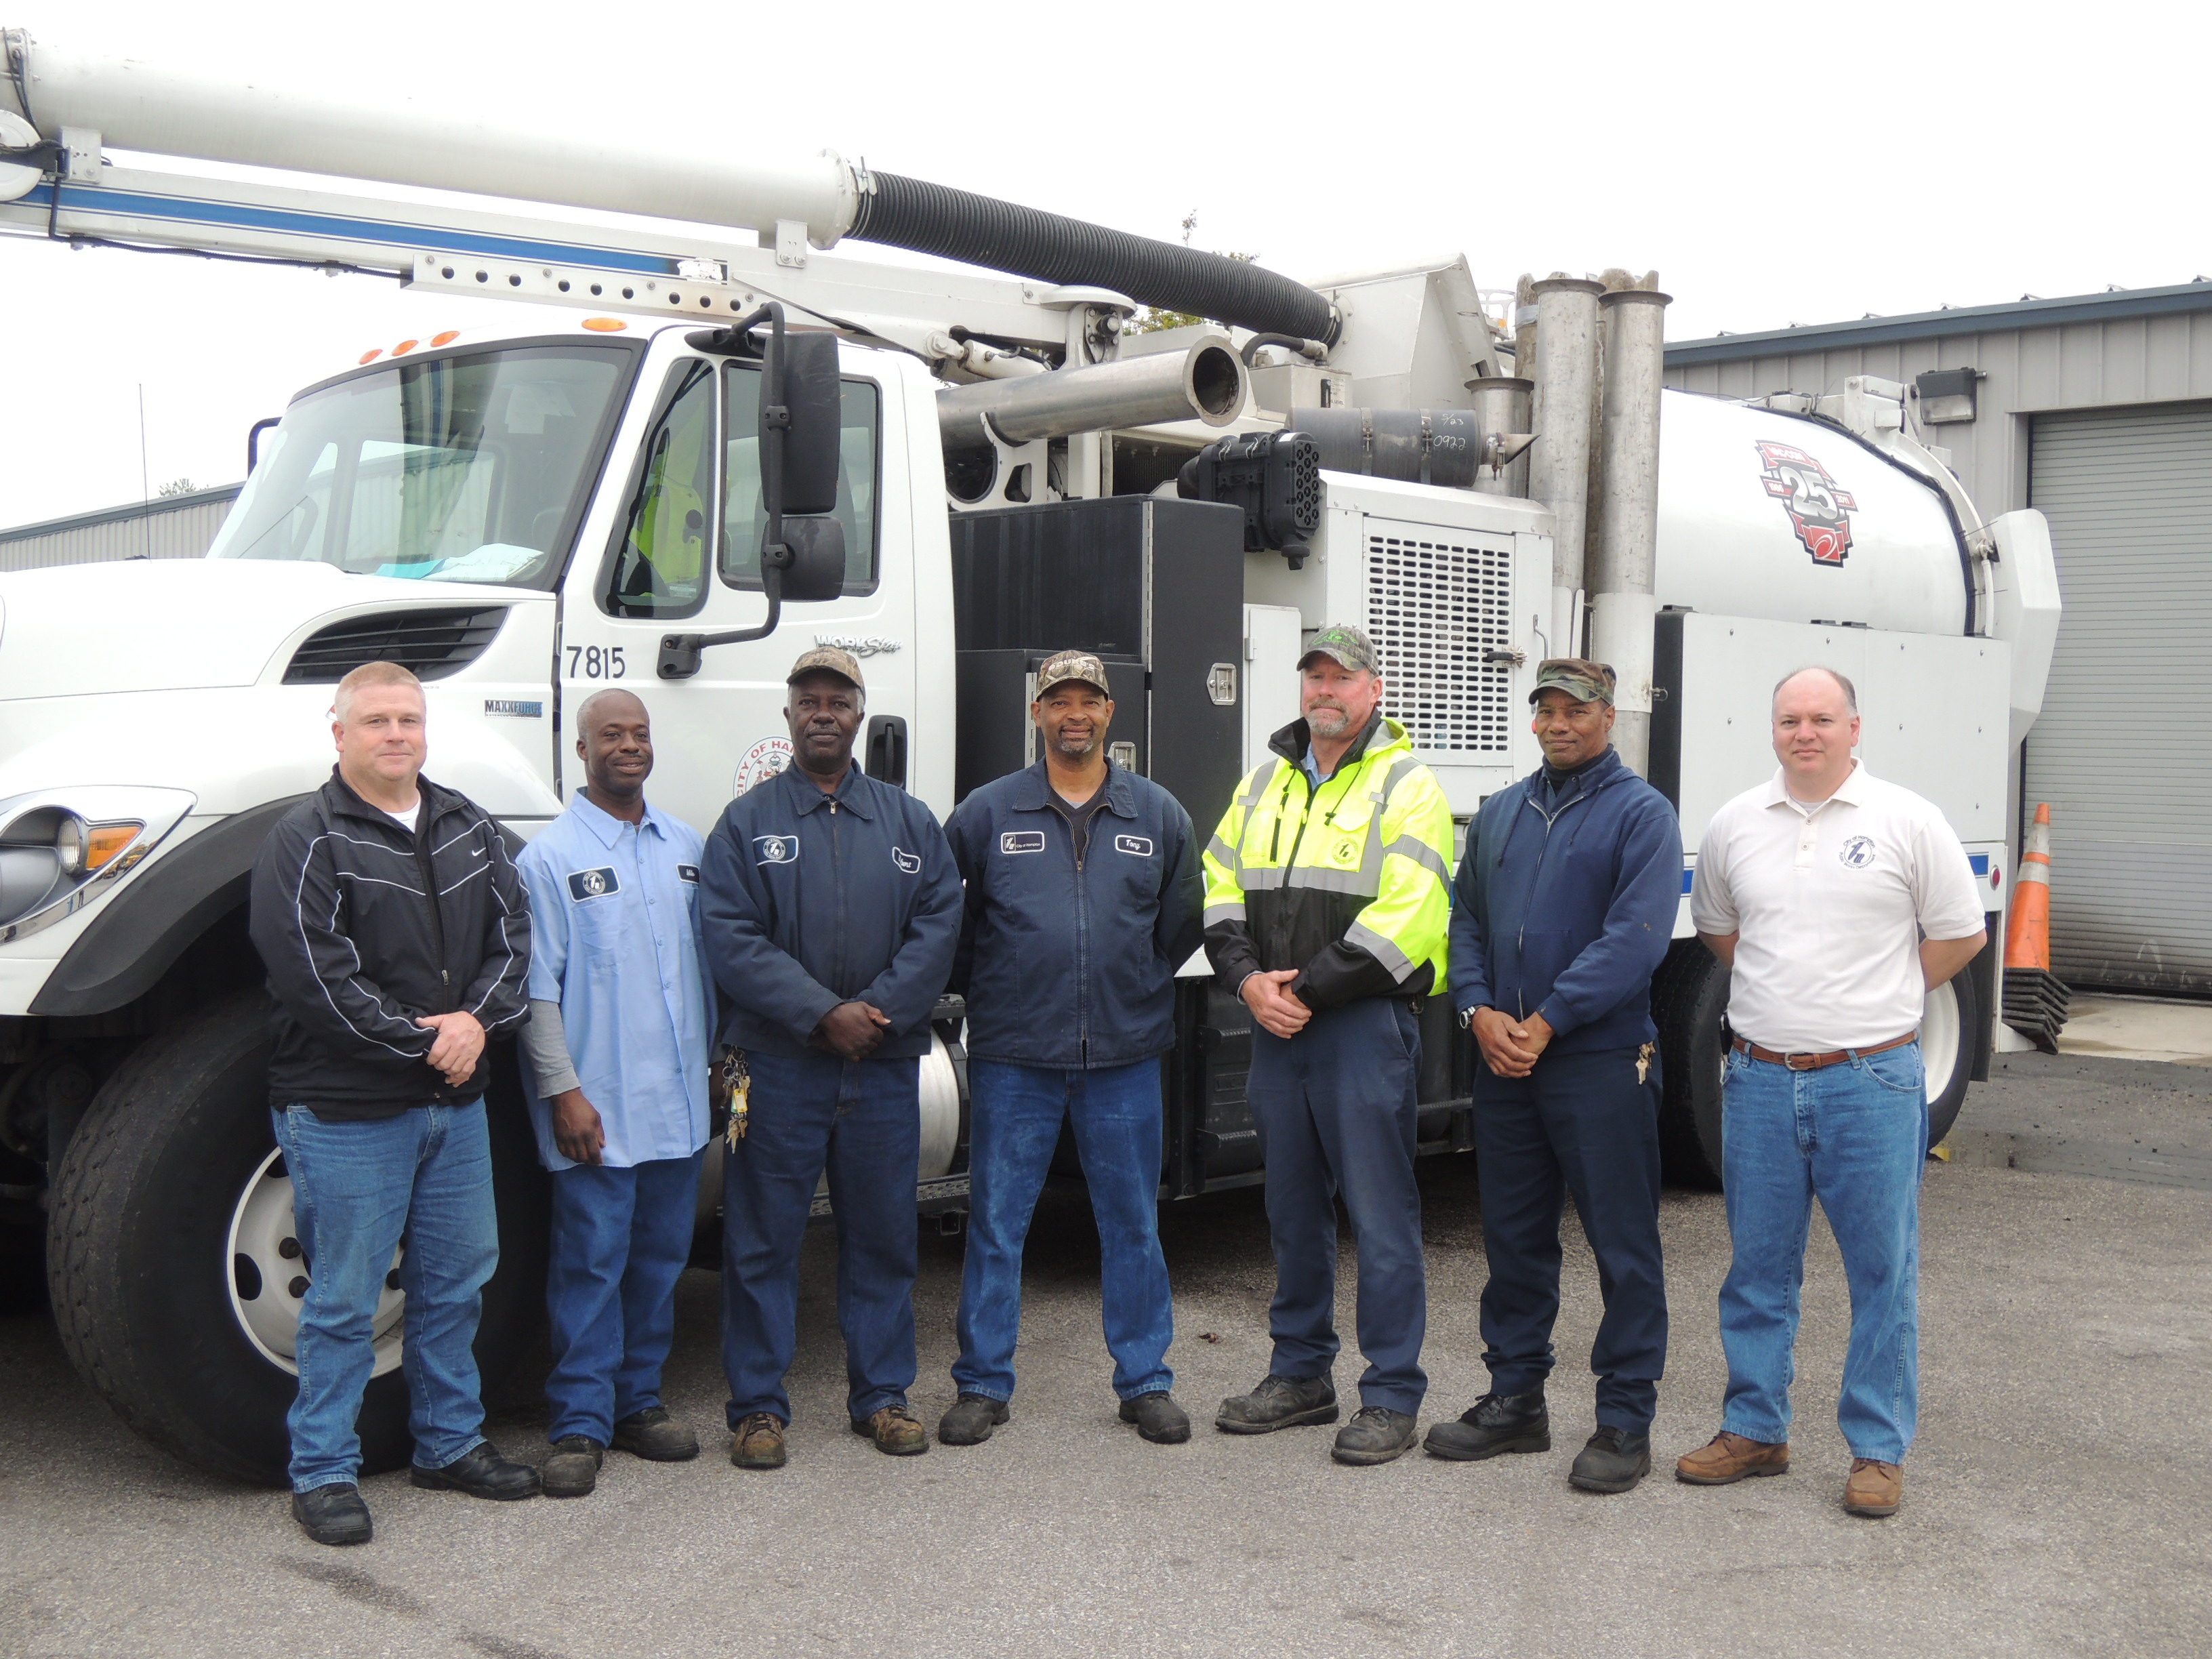 Public works crew that recovered lost ring